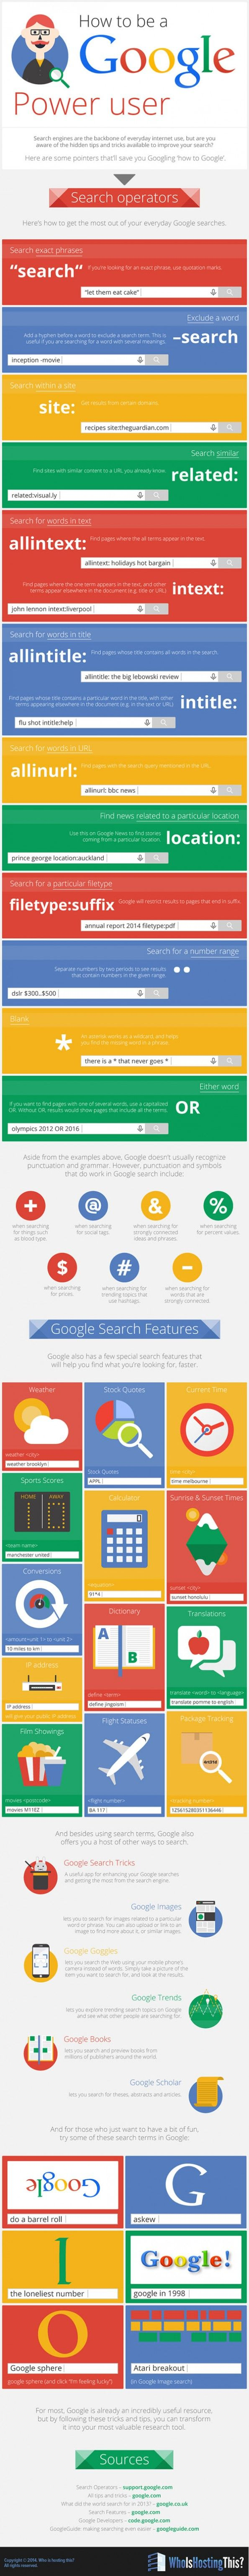 Tips & trucs voor effectiever zoeken in Google / How to be a Google power user #infographic - Frankwatching